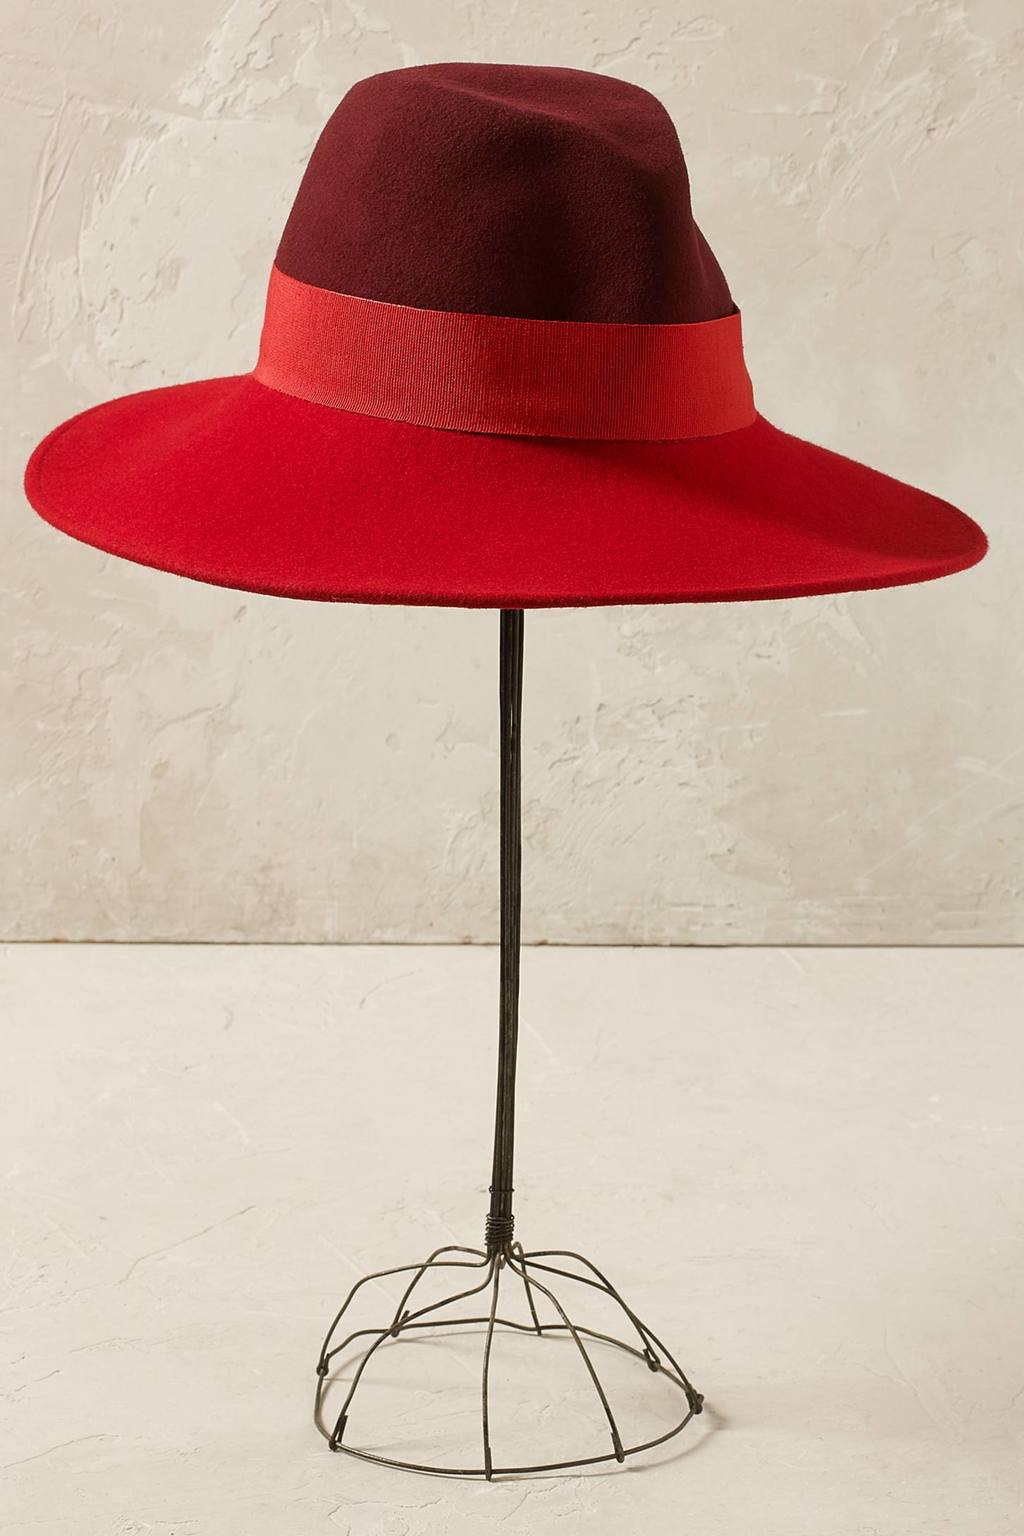 Poppy Colour Block Fedora - predominant colour: true red; secondary colour: burgundy; occasions: casual; type of pattern: standard; style: fedora; size: standard; material: felt; pattern: colourblock; season: s/s 2016; wardrobe: highlight